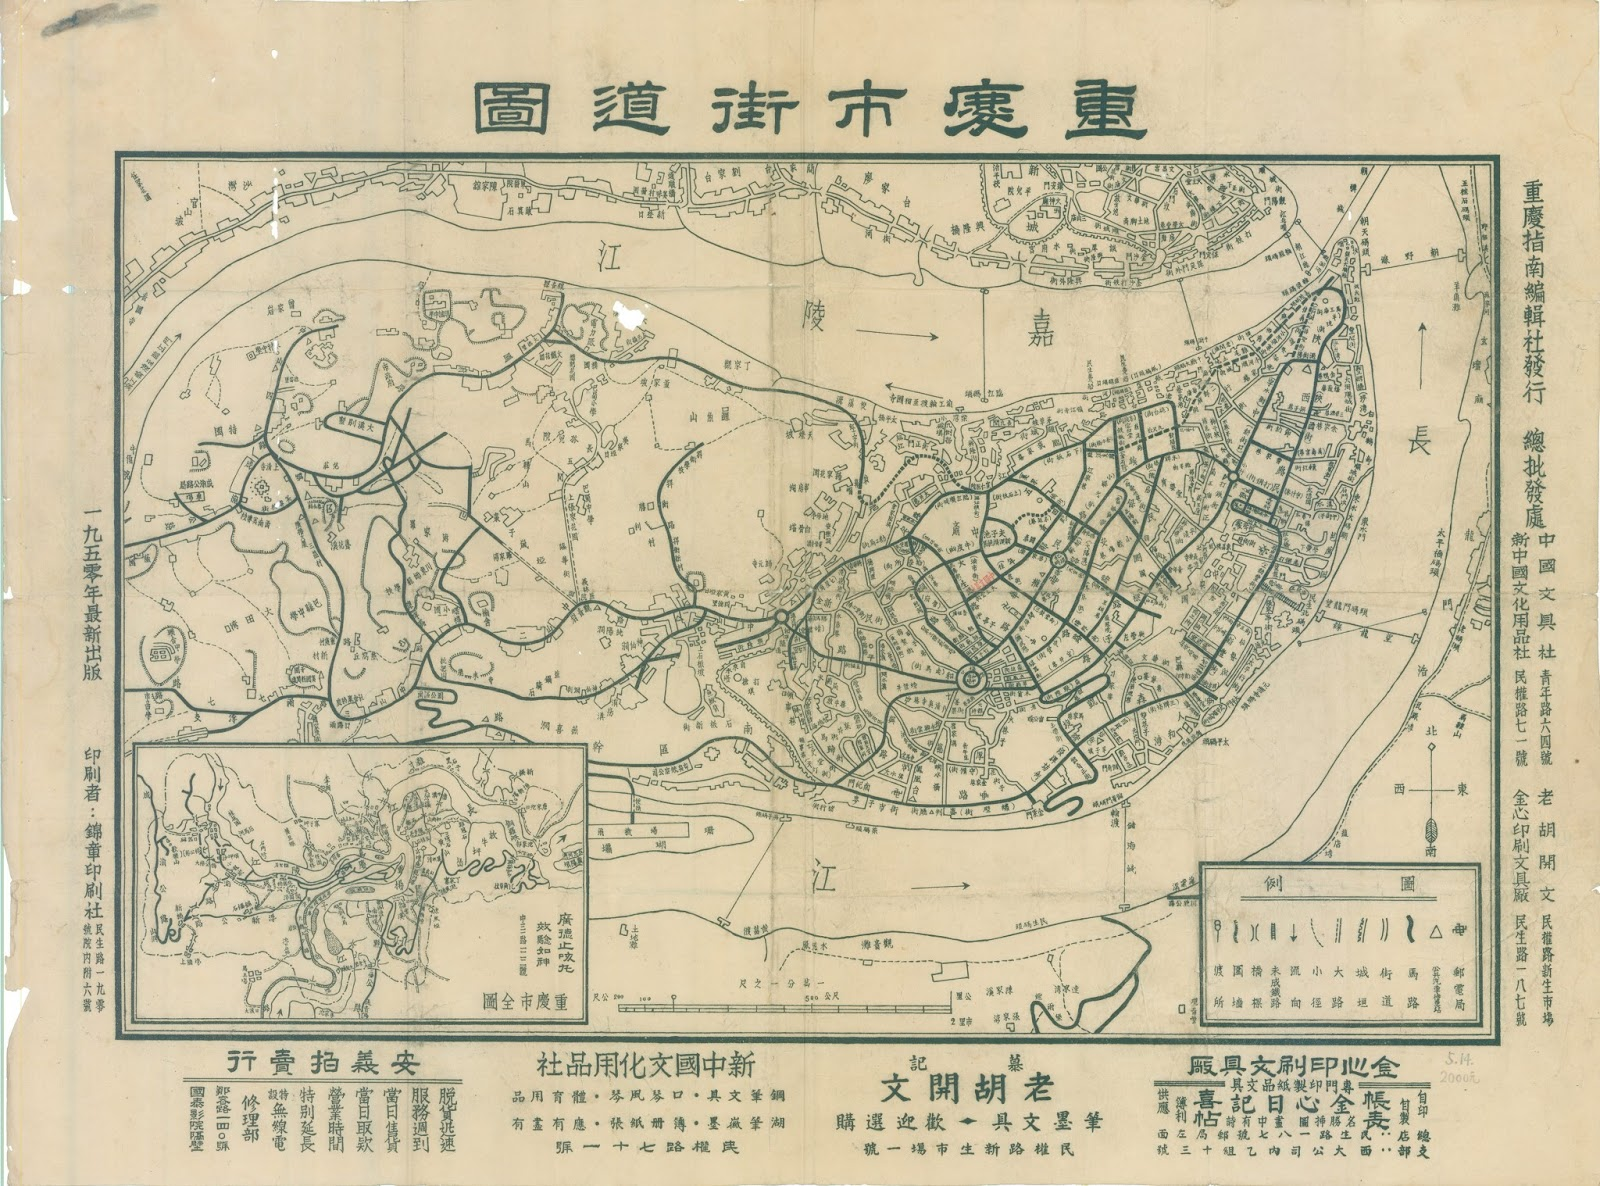 this map shows the chongqing city in 1940